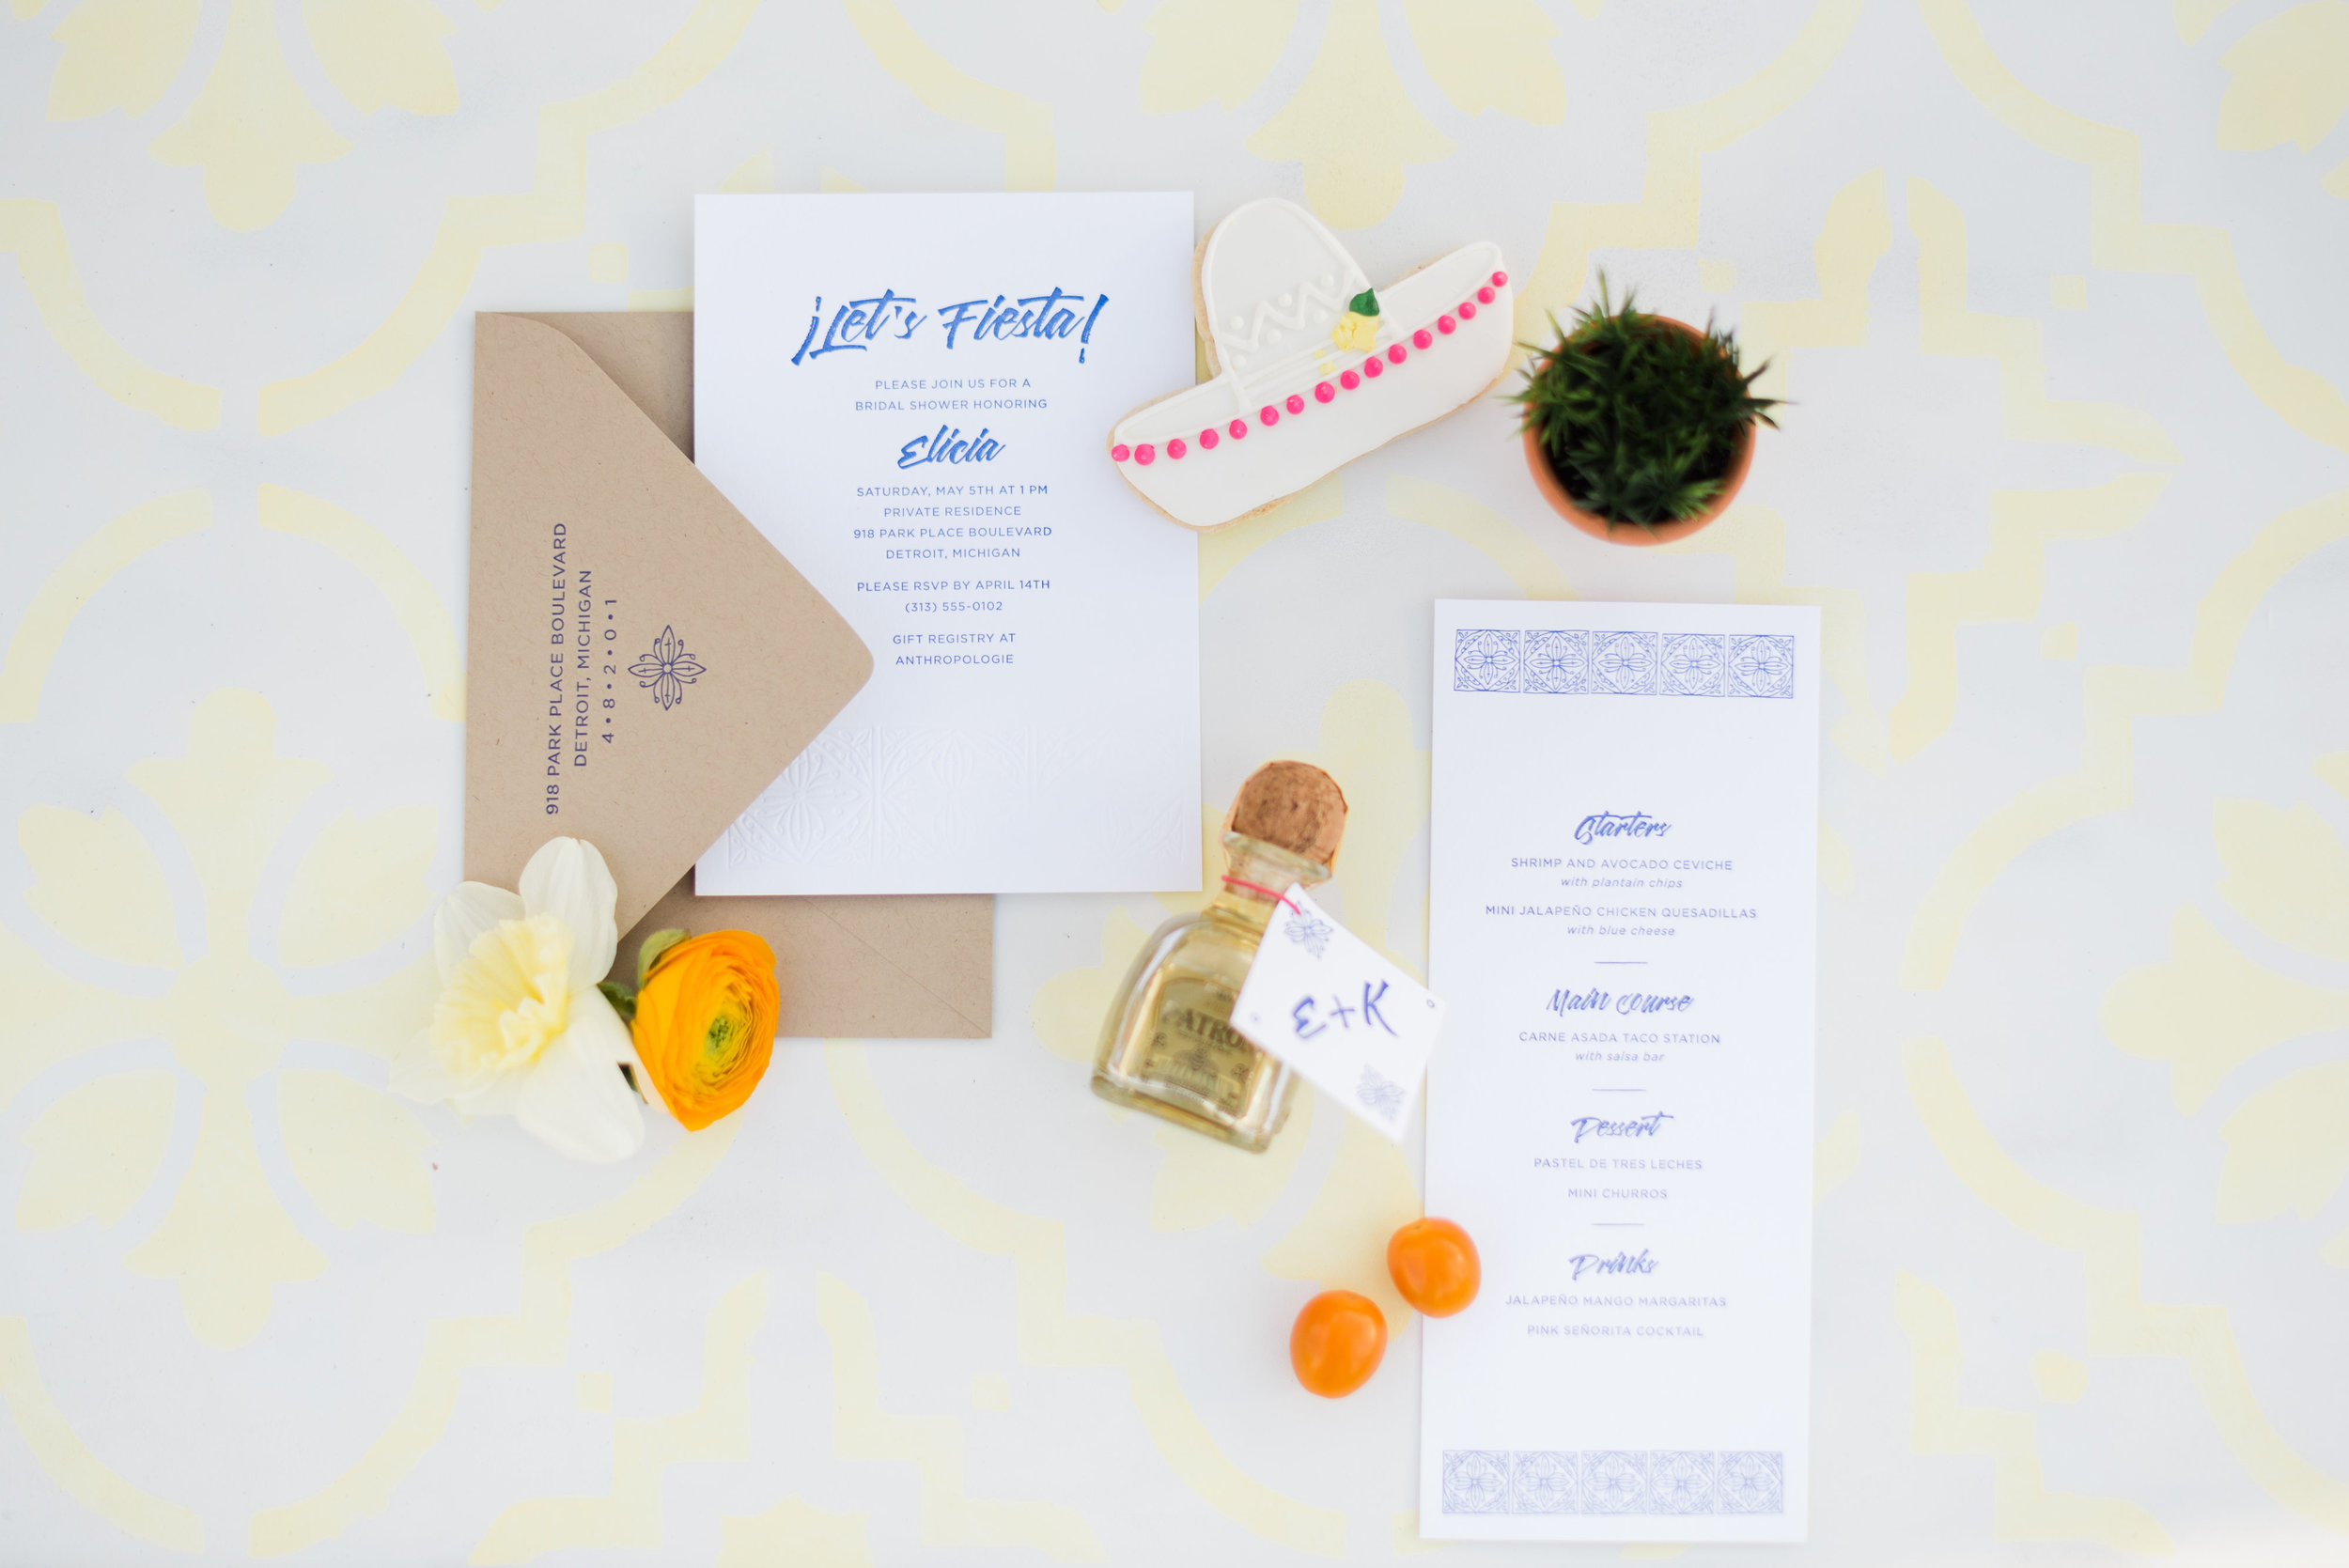 Fiesta Party & Bridal Shower Inspiration Styled by Event Prep Photographed by Amanda Collins!